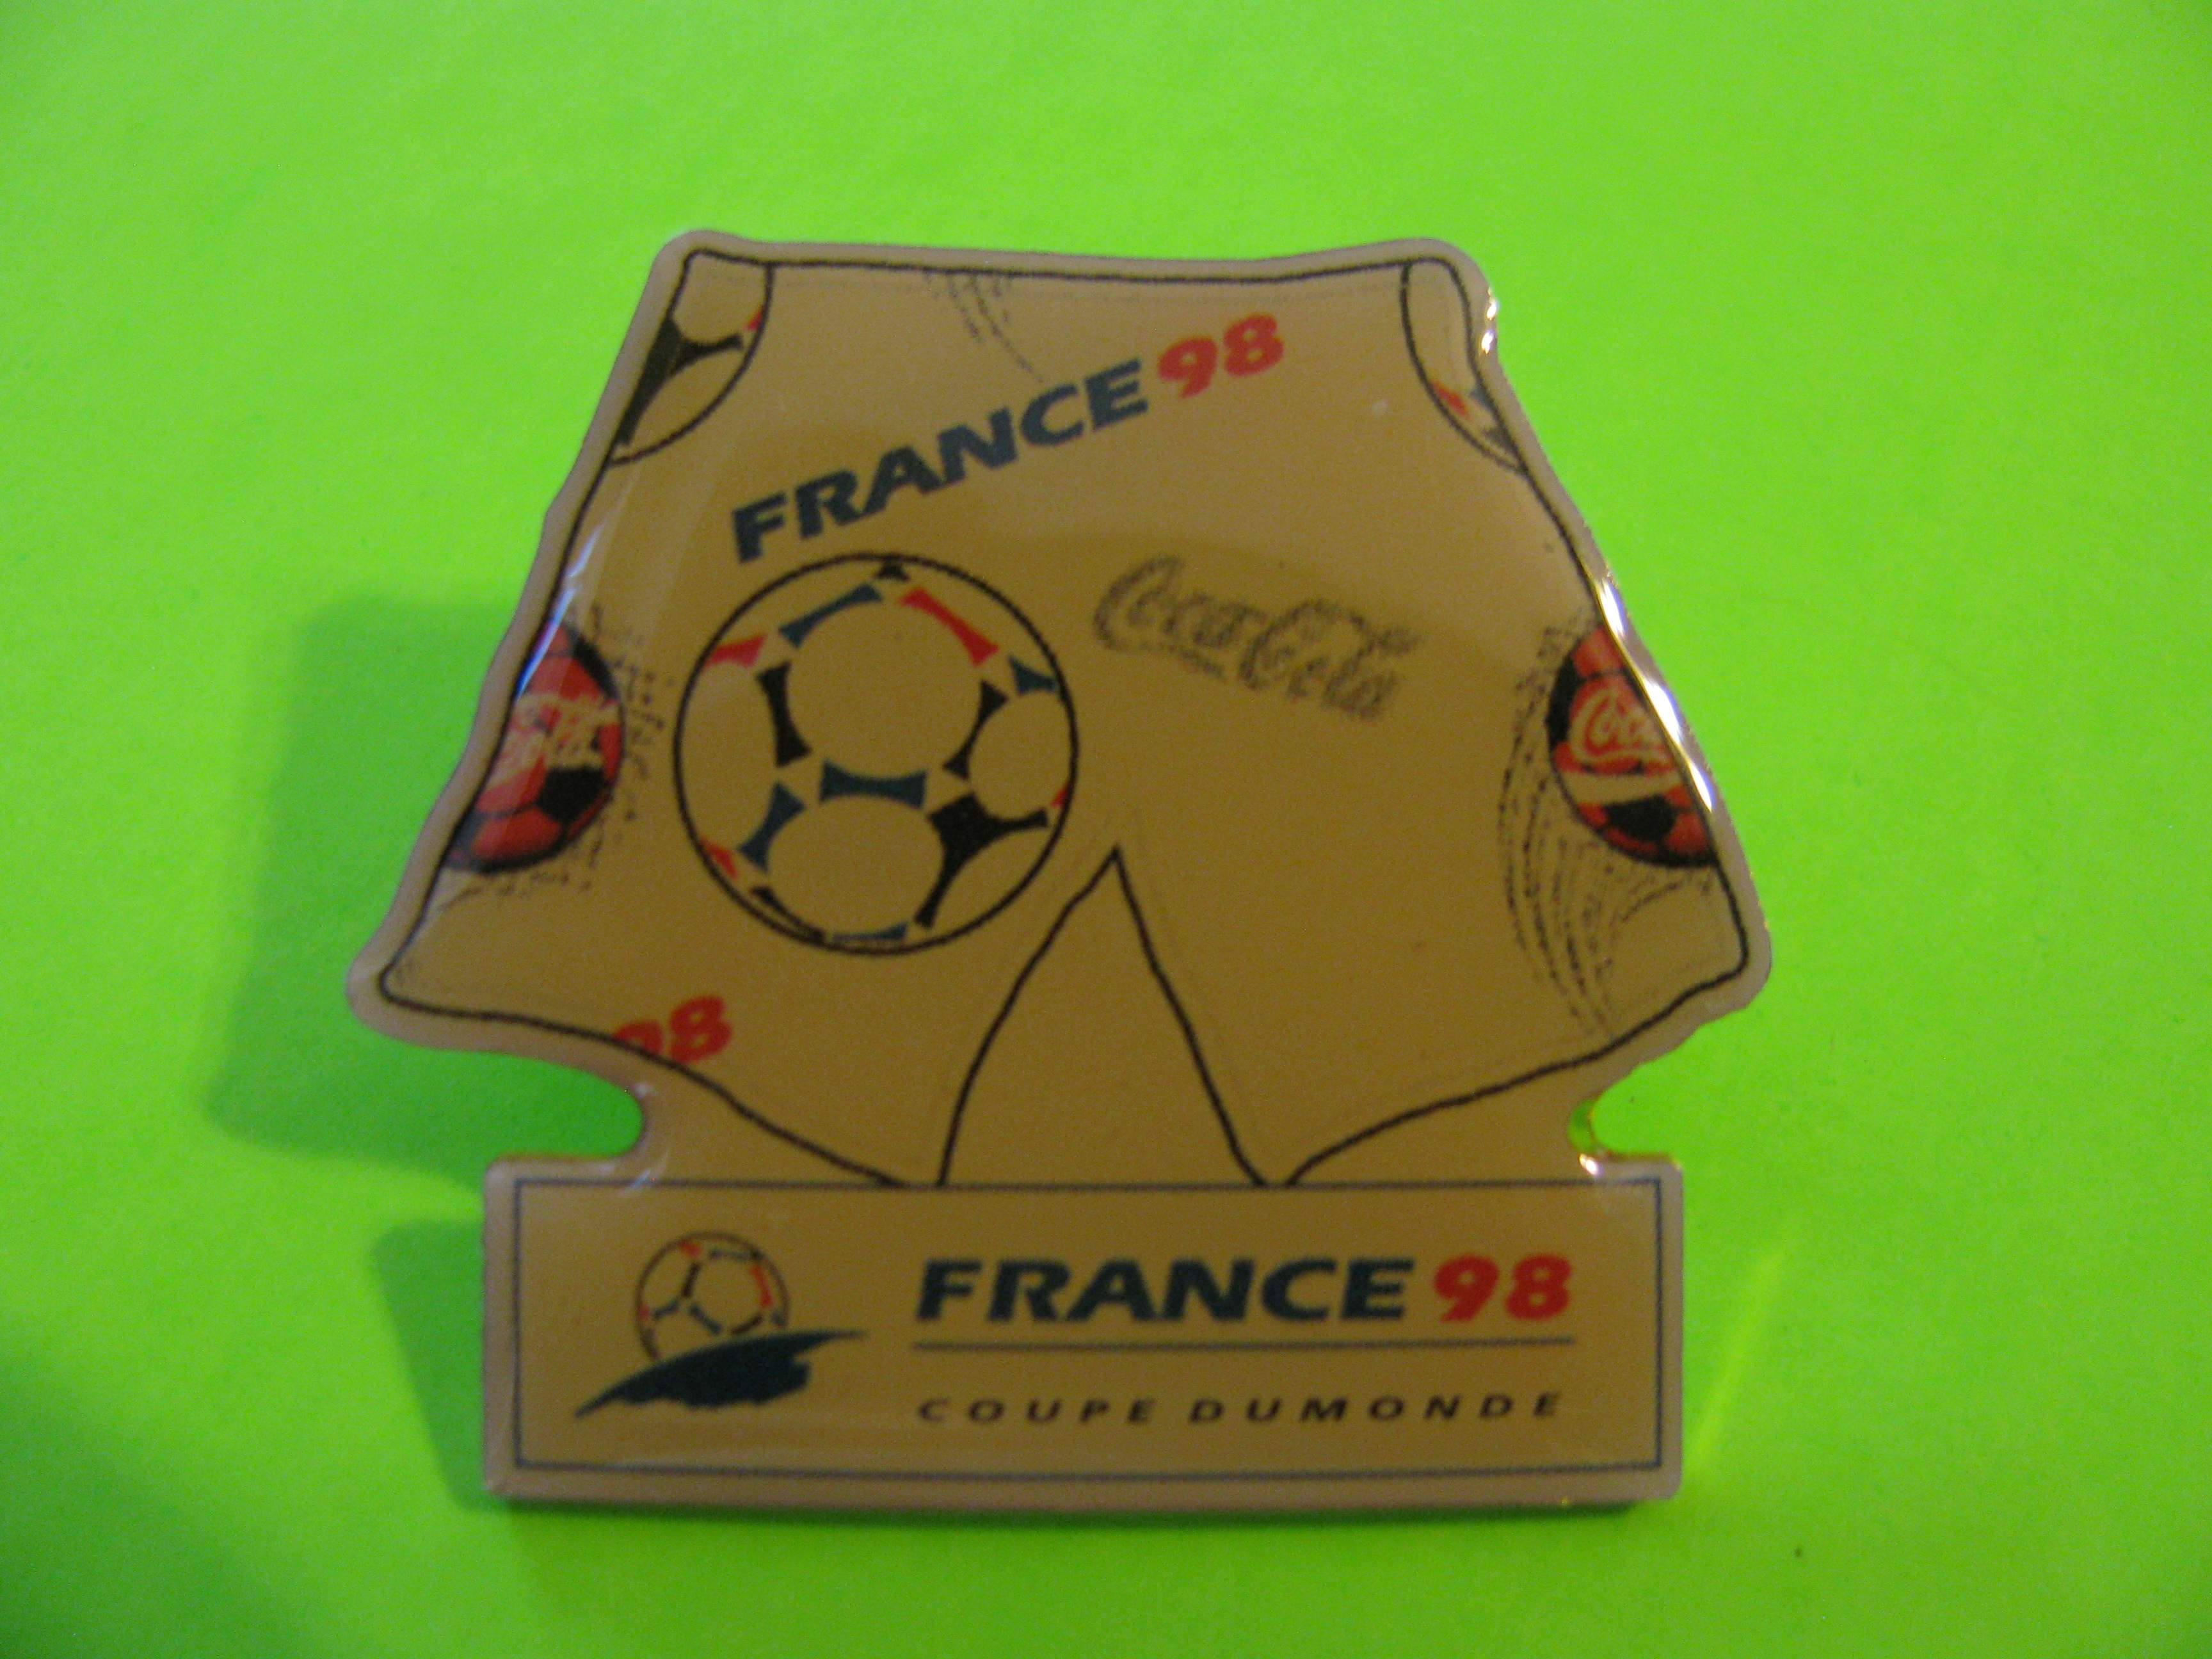 Vintage Coca Cola 1998 Soccer Pin France Coupe Dumonde (1994 1SL) with Butterfly Clutch